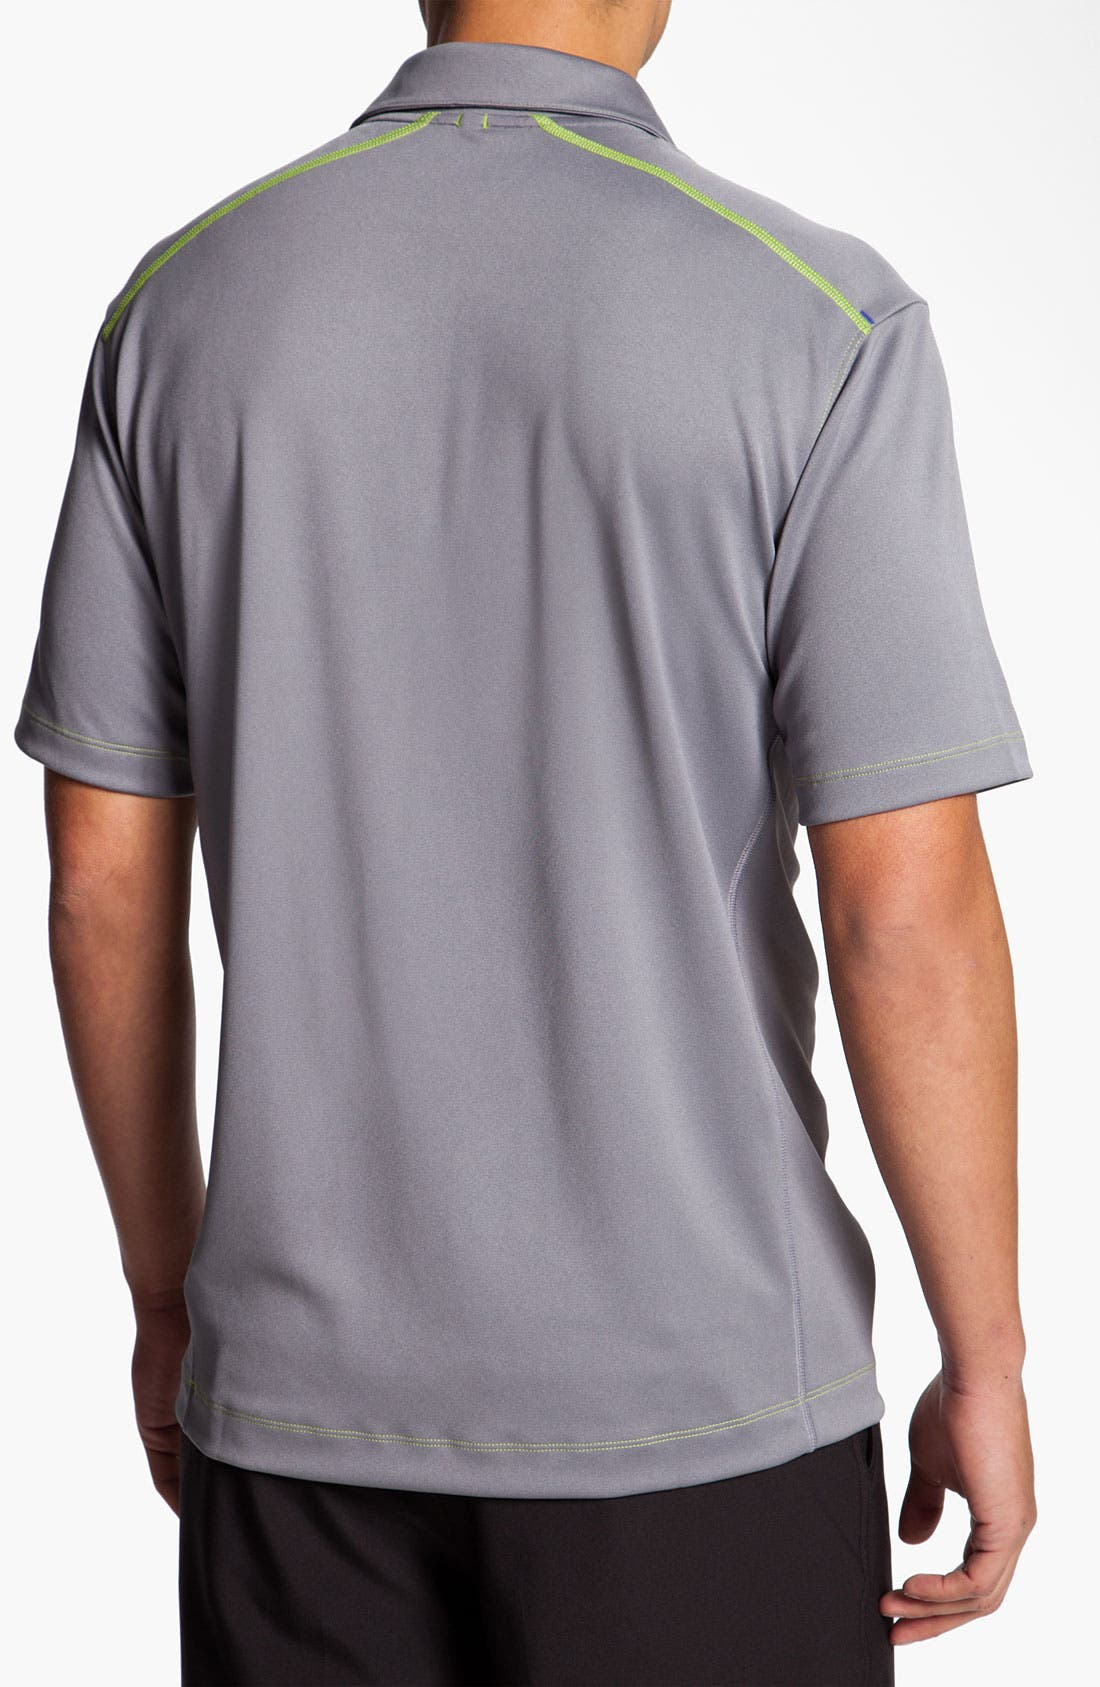 Alternate Image 2  - Nike Golf 'Herringbone Jacquard' Dri-FIT Polo